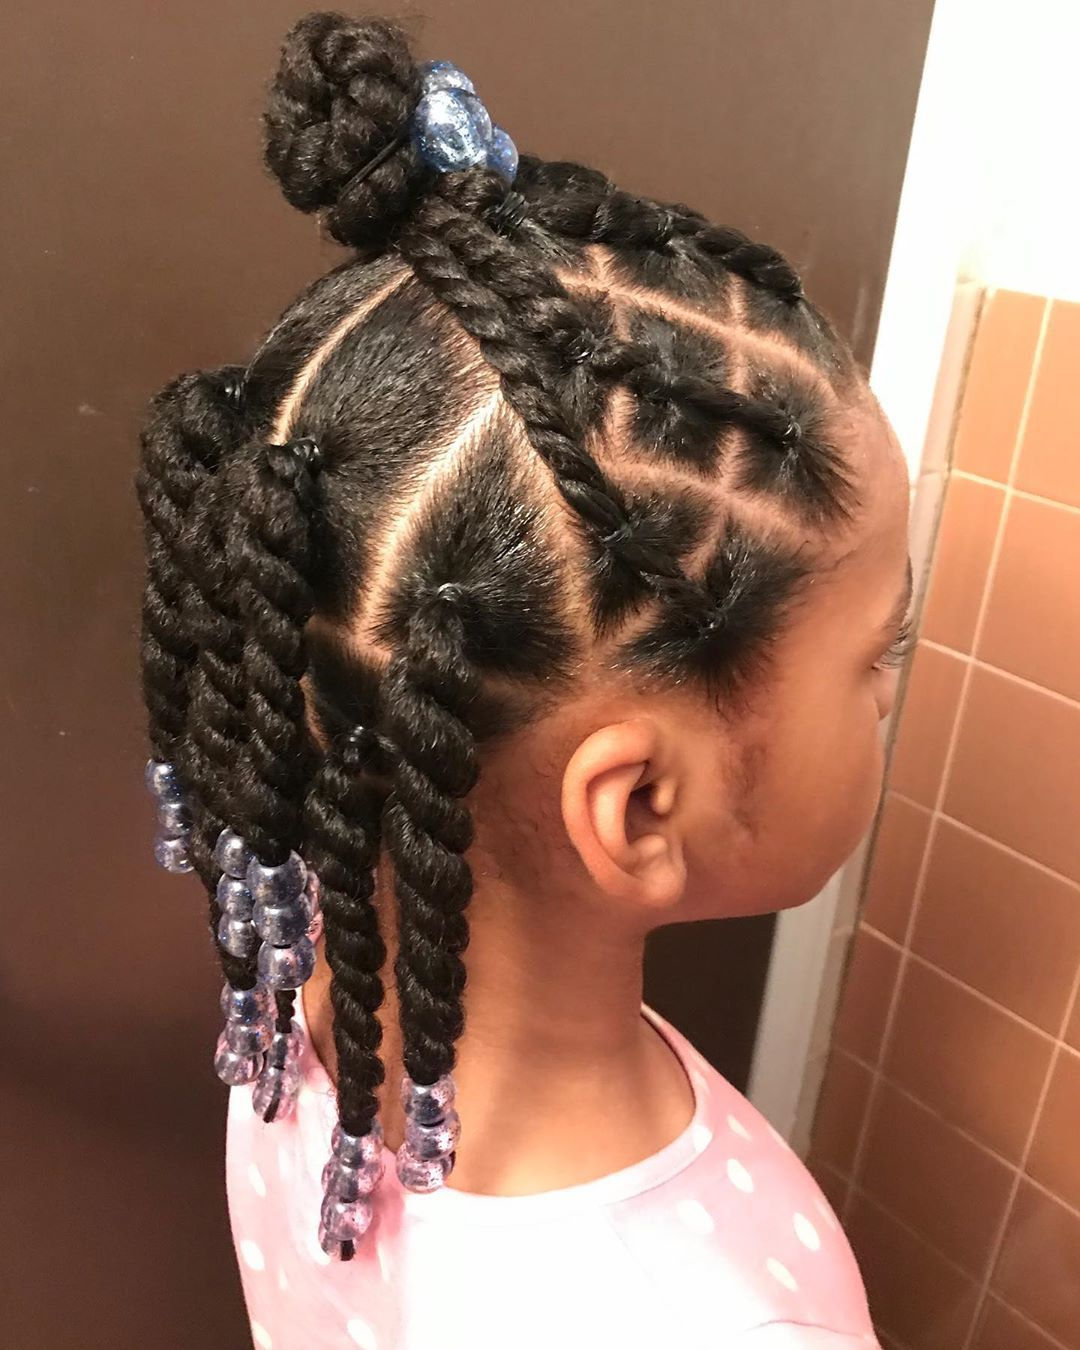 Tanya Audrey On Instagram Half Up Half Down Twist Products Used Sheamoisture Curl S Kids Hairstyles Girls Lil Girl Hairstyles Kids Braided Hairstyles